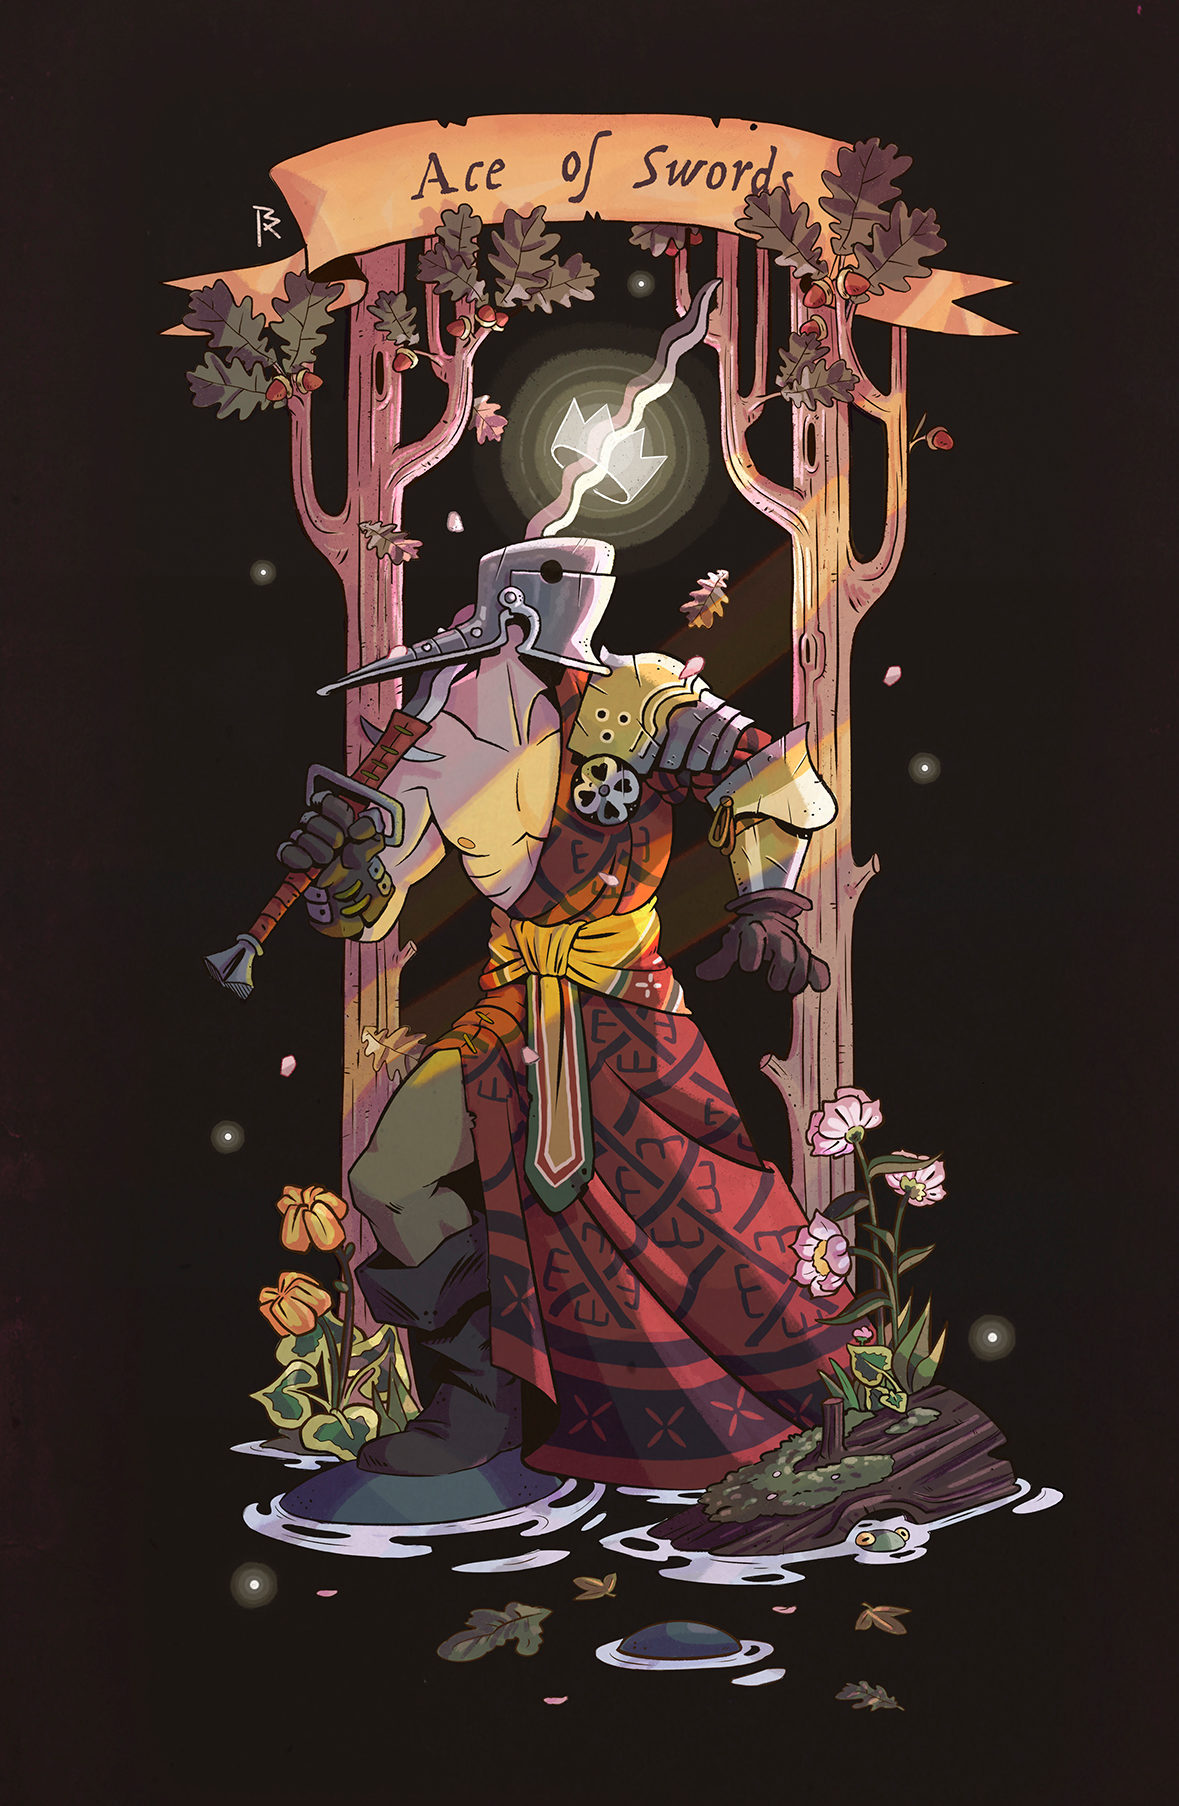 Ace of swords illustration